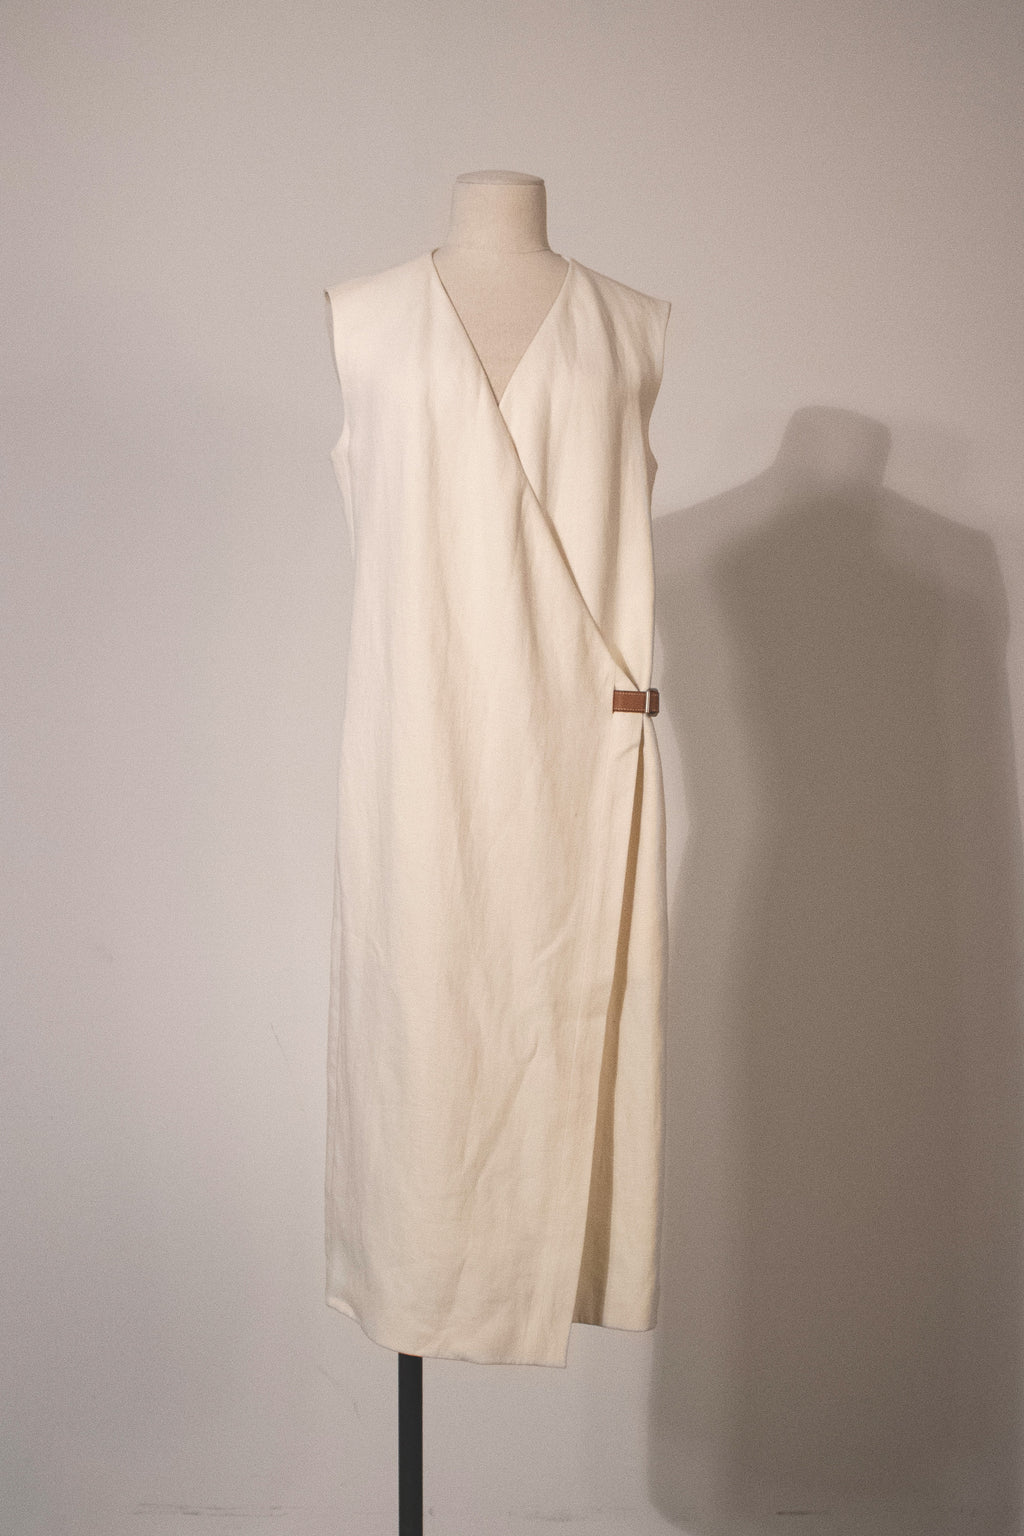 Margiela for Hermes linen wrap dress